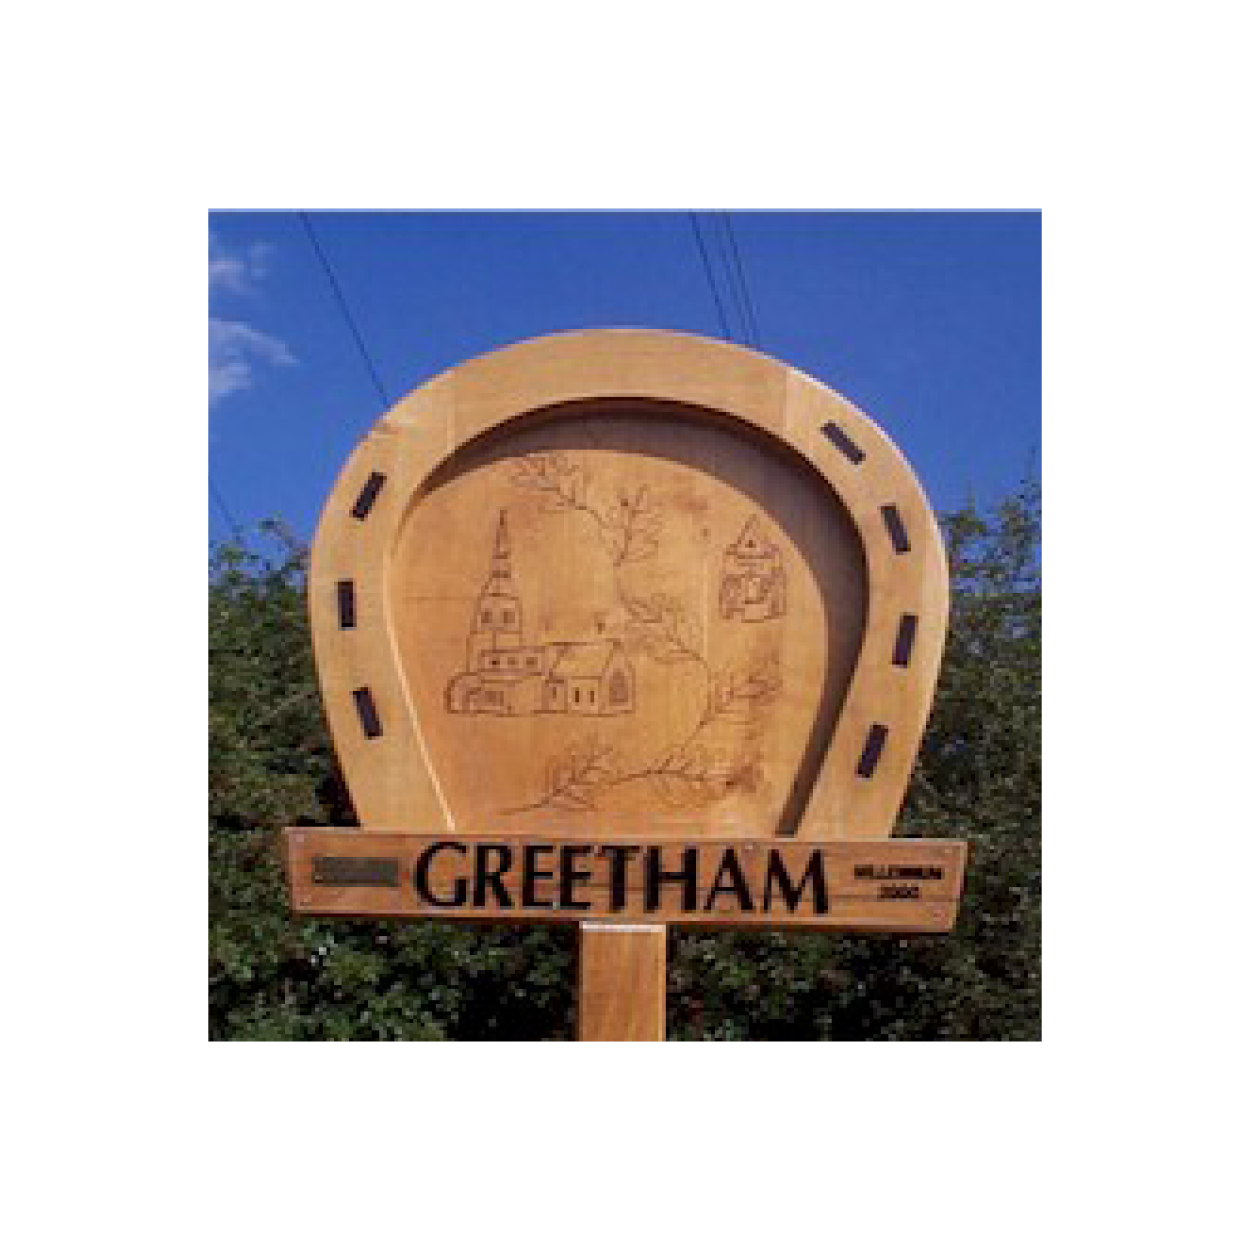 Greetham Village